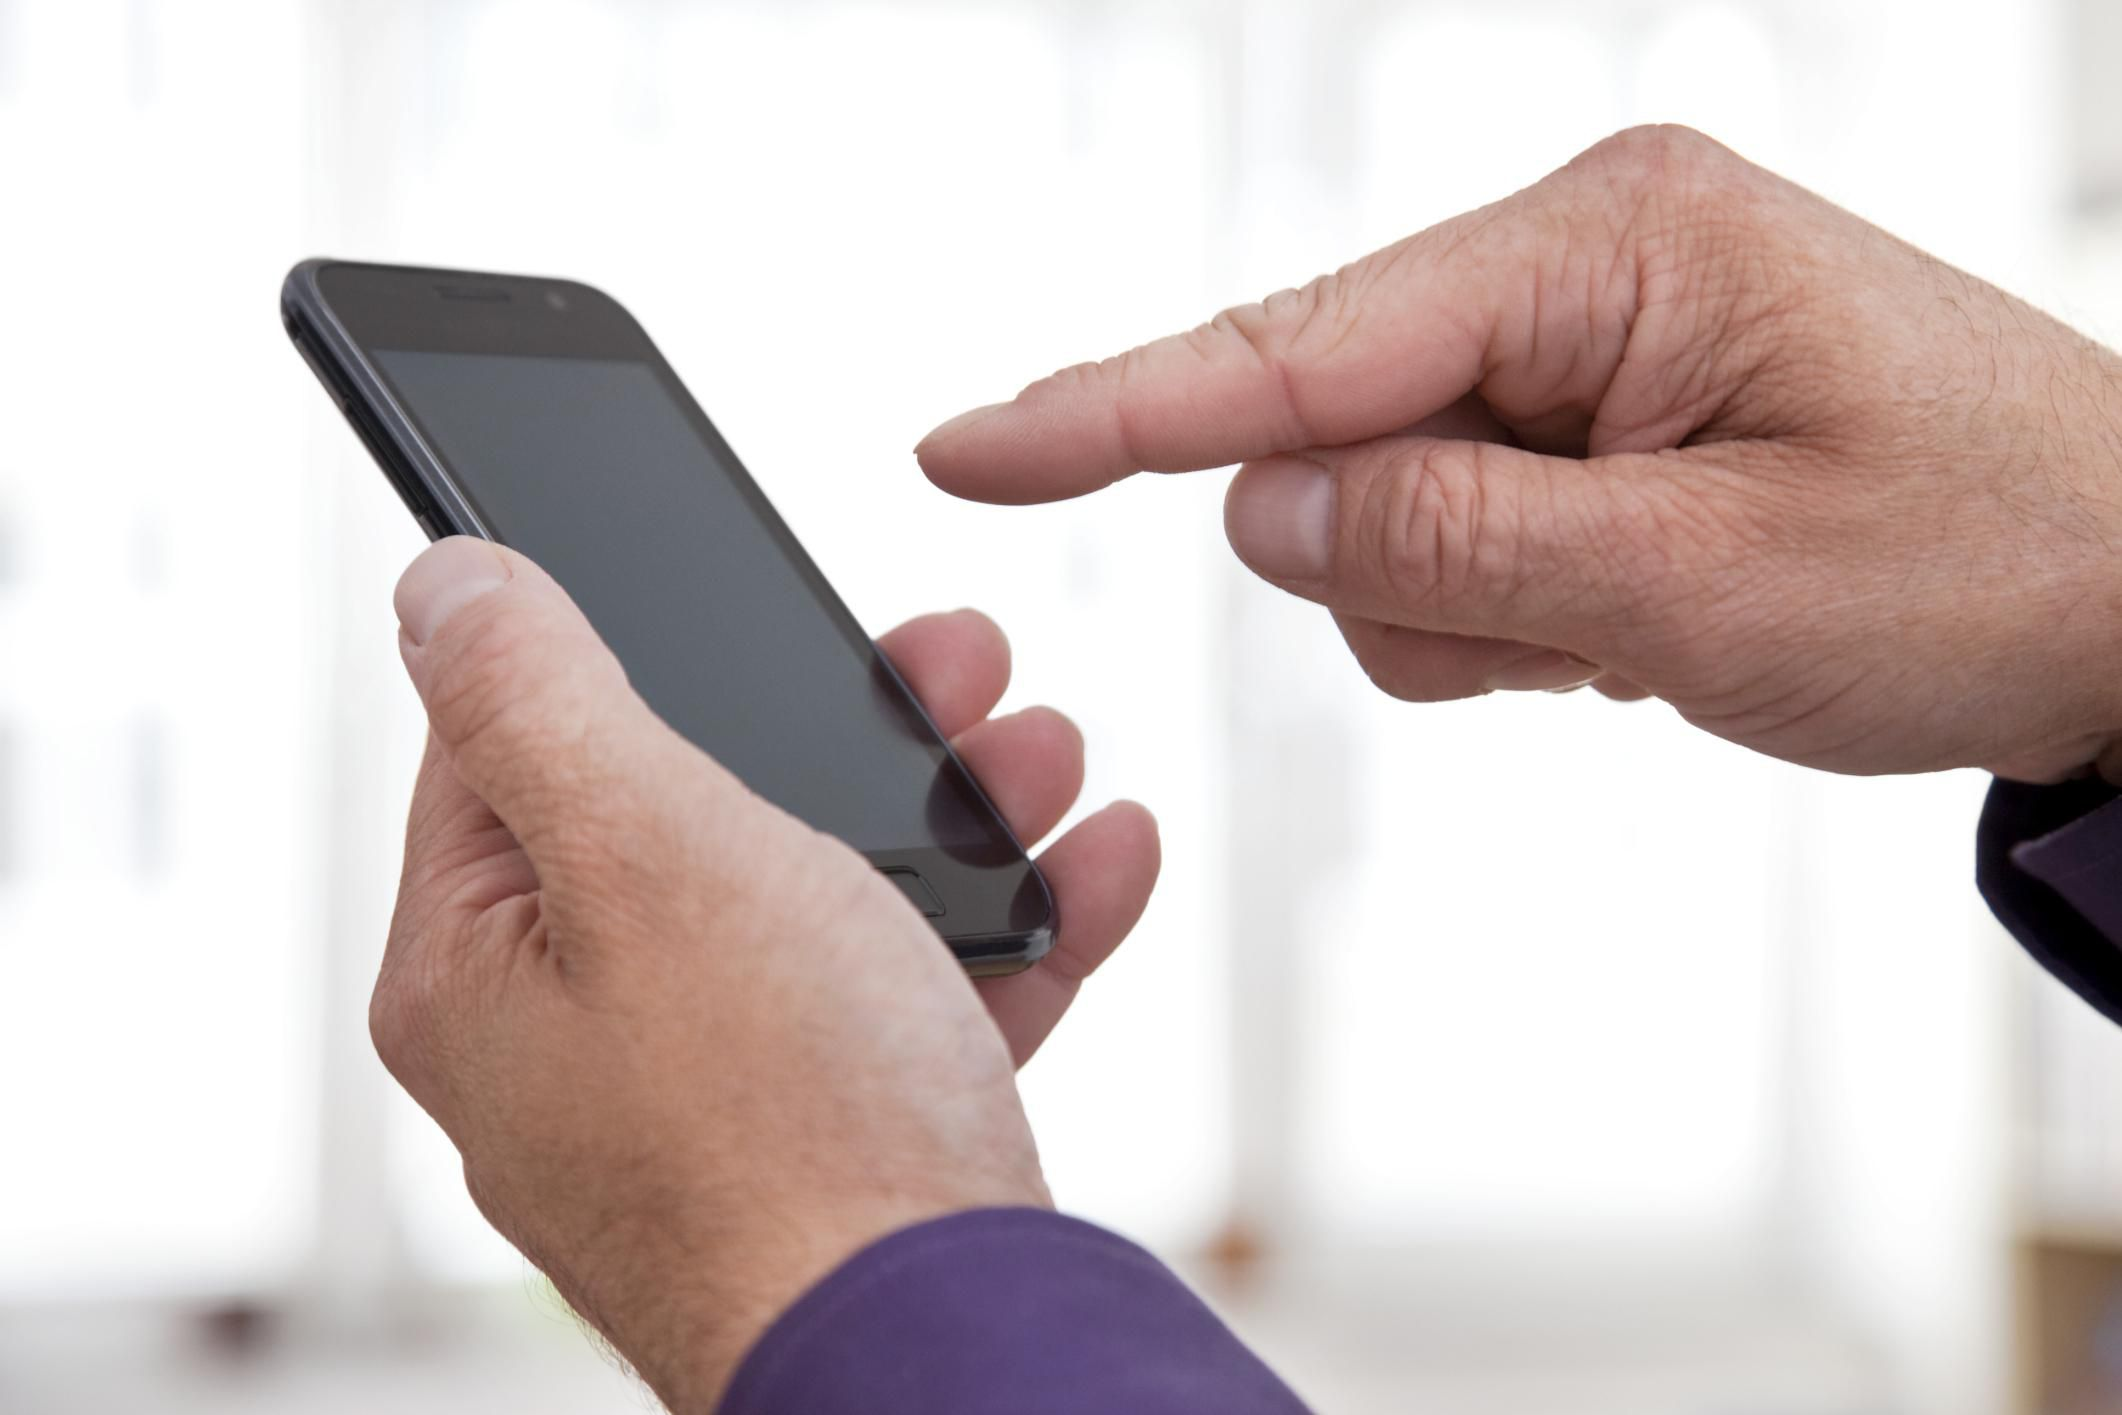 cell phone use changing life as